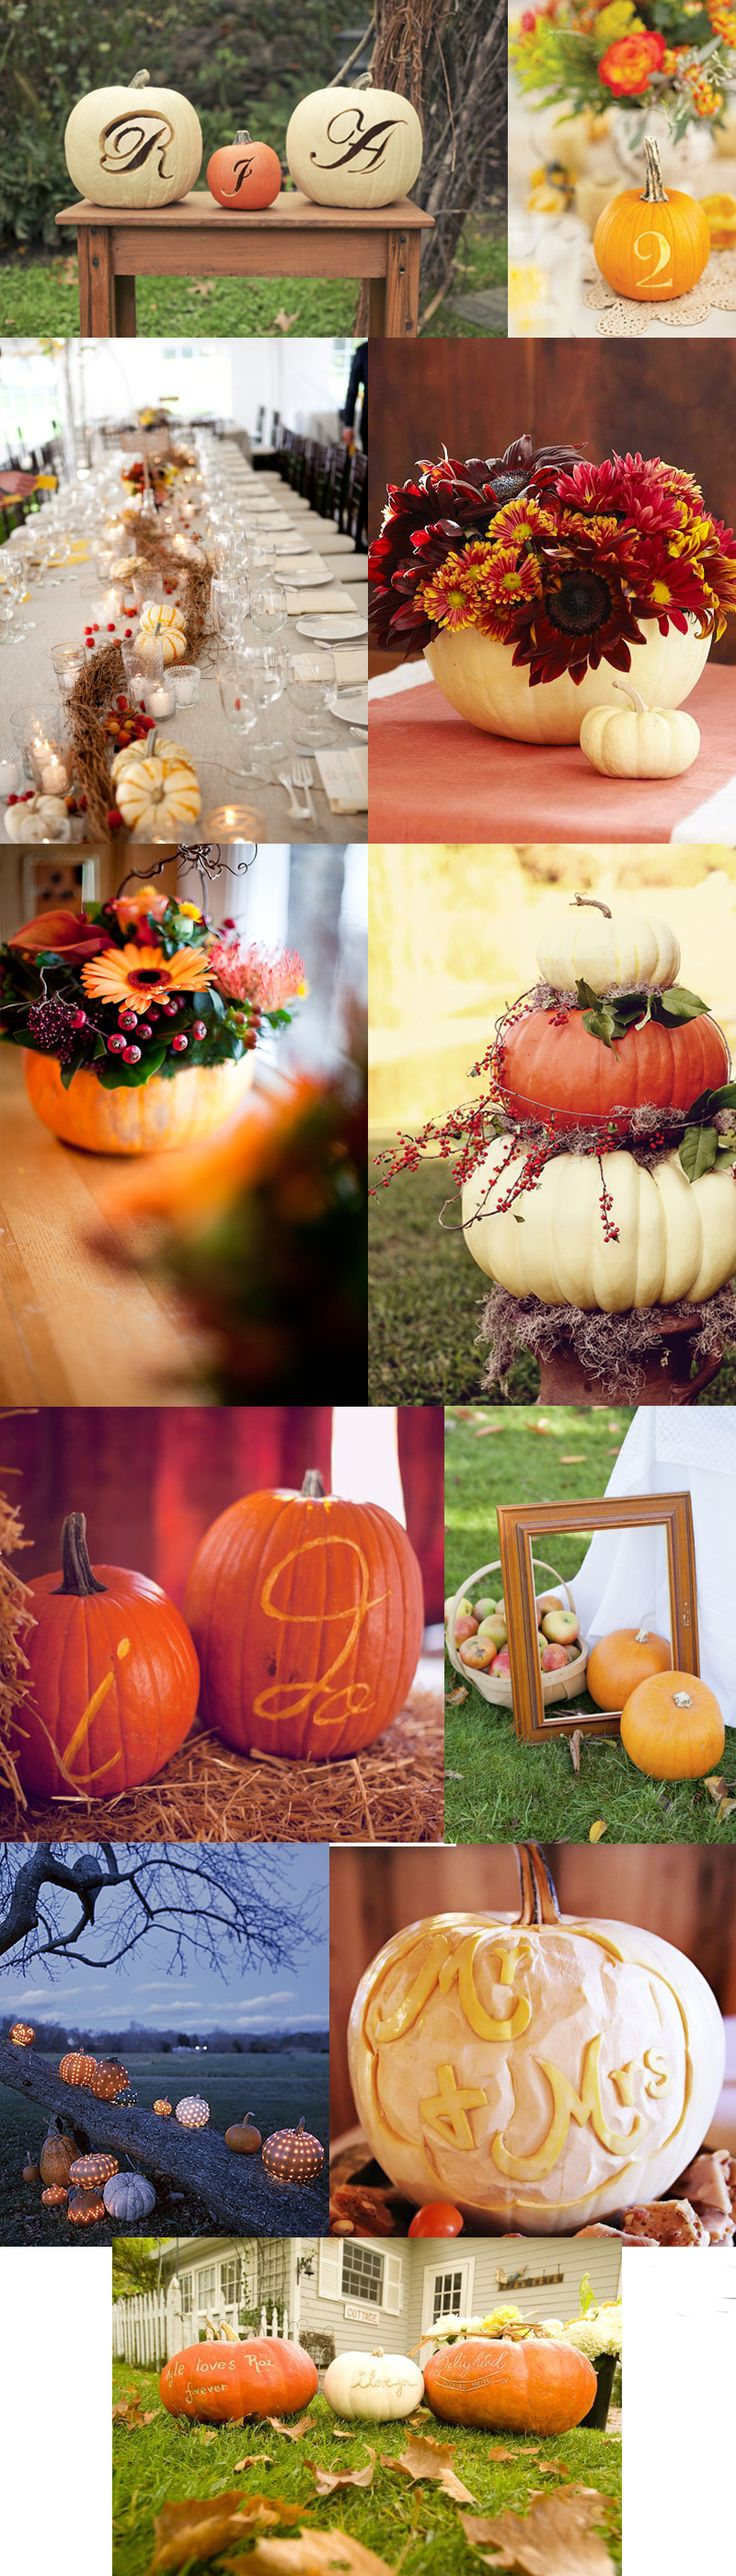 Unique Touches for Your Autumn Wedding - white pumpkins only